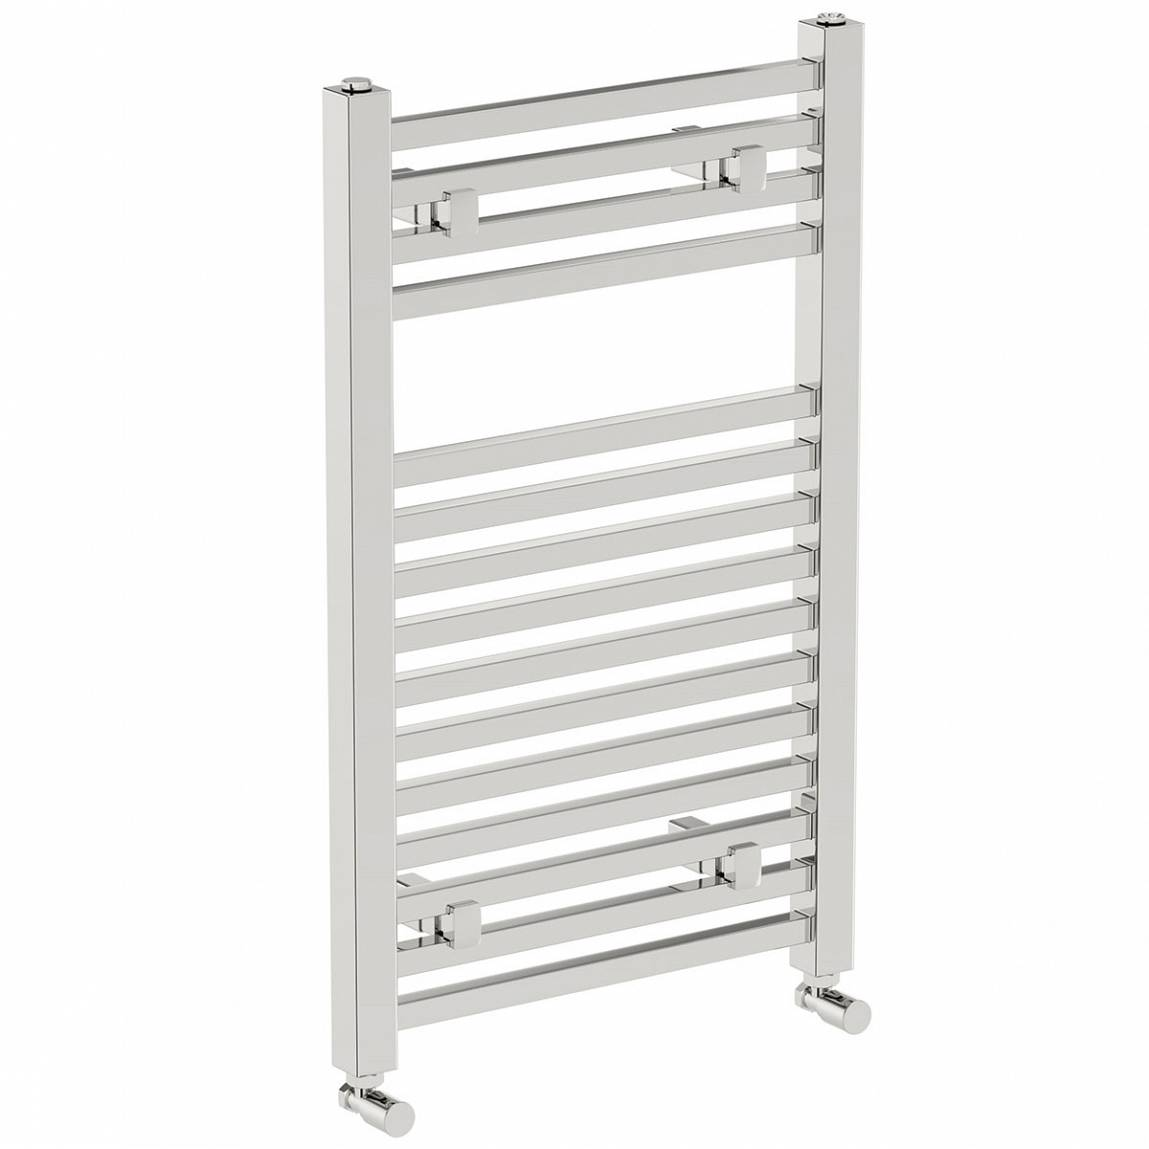 Image of Square Heated Towel Rail 800 x 490